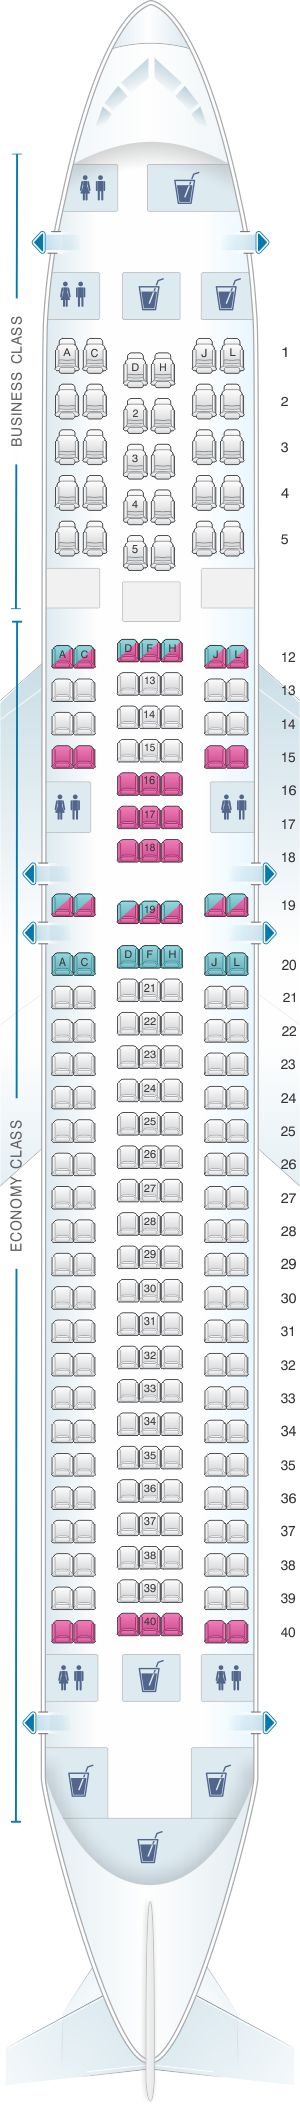 Seat map for LAN Airlines Boeing B767 300